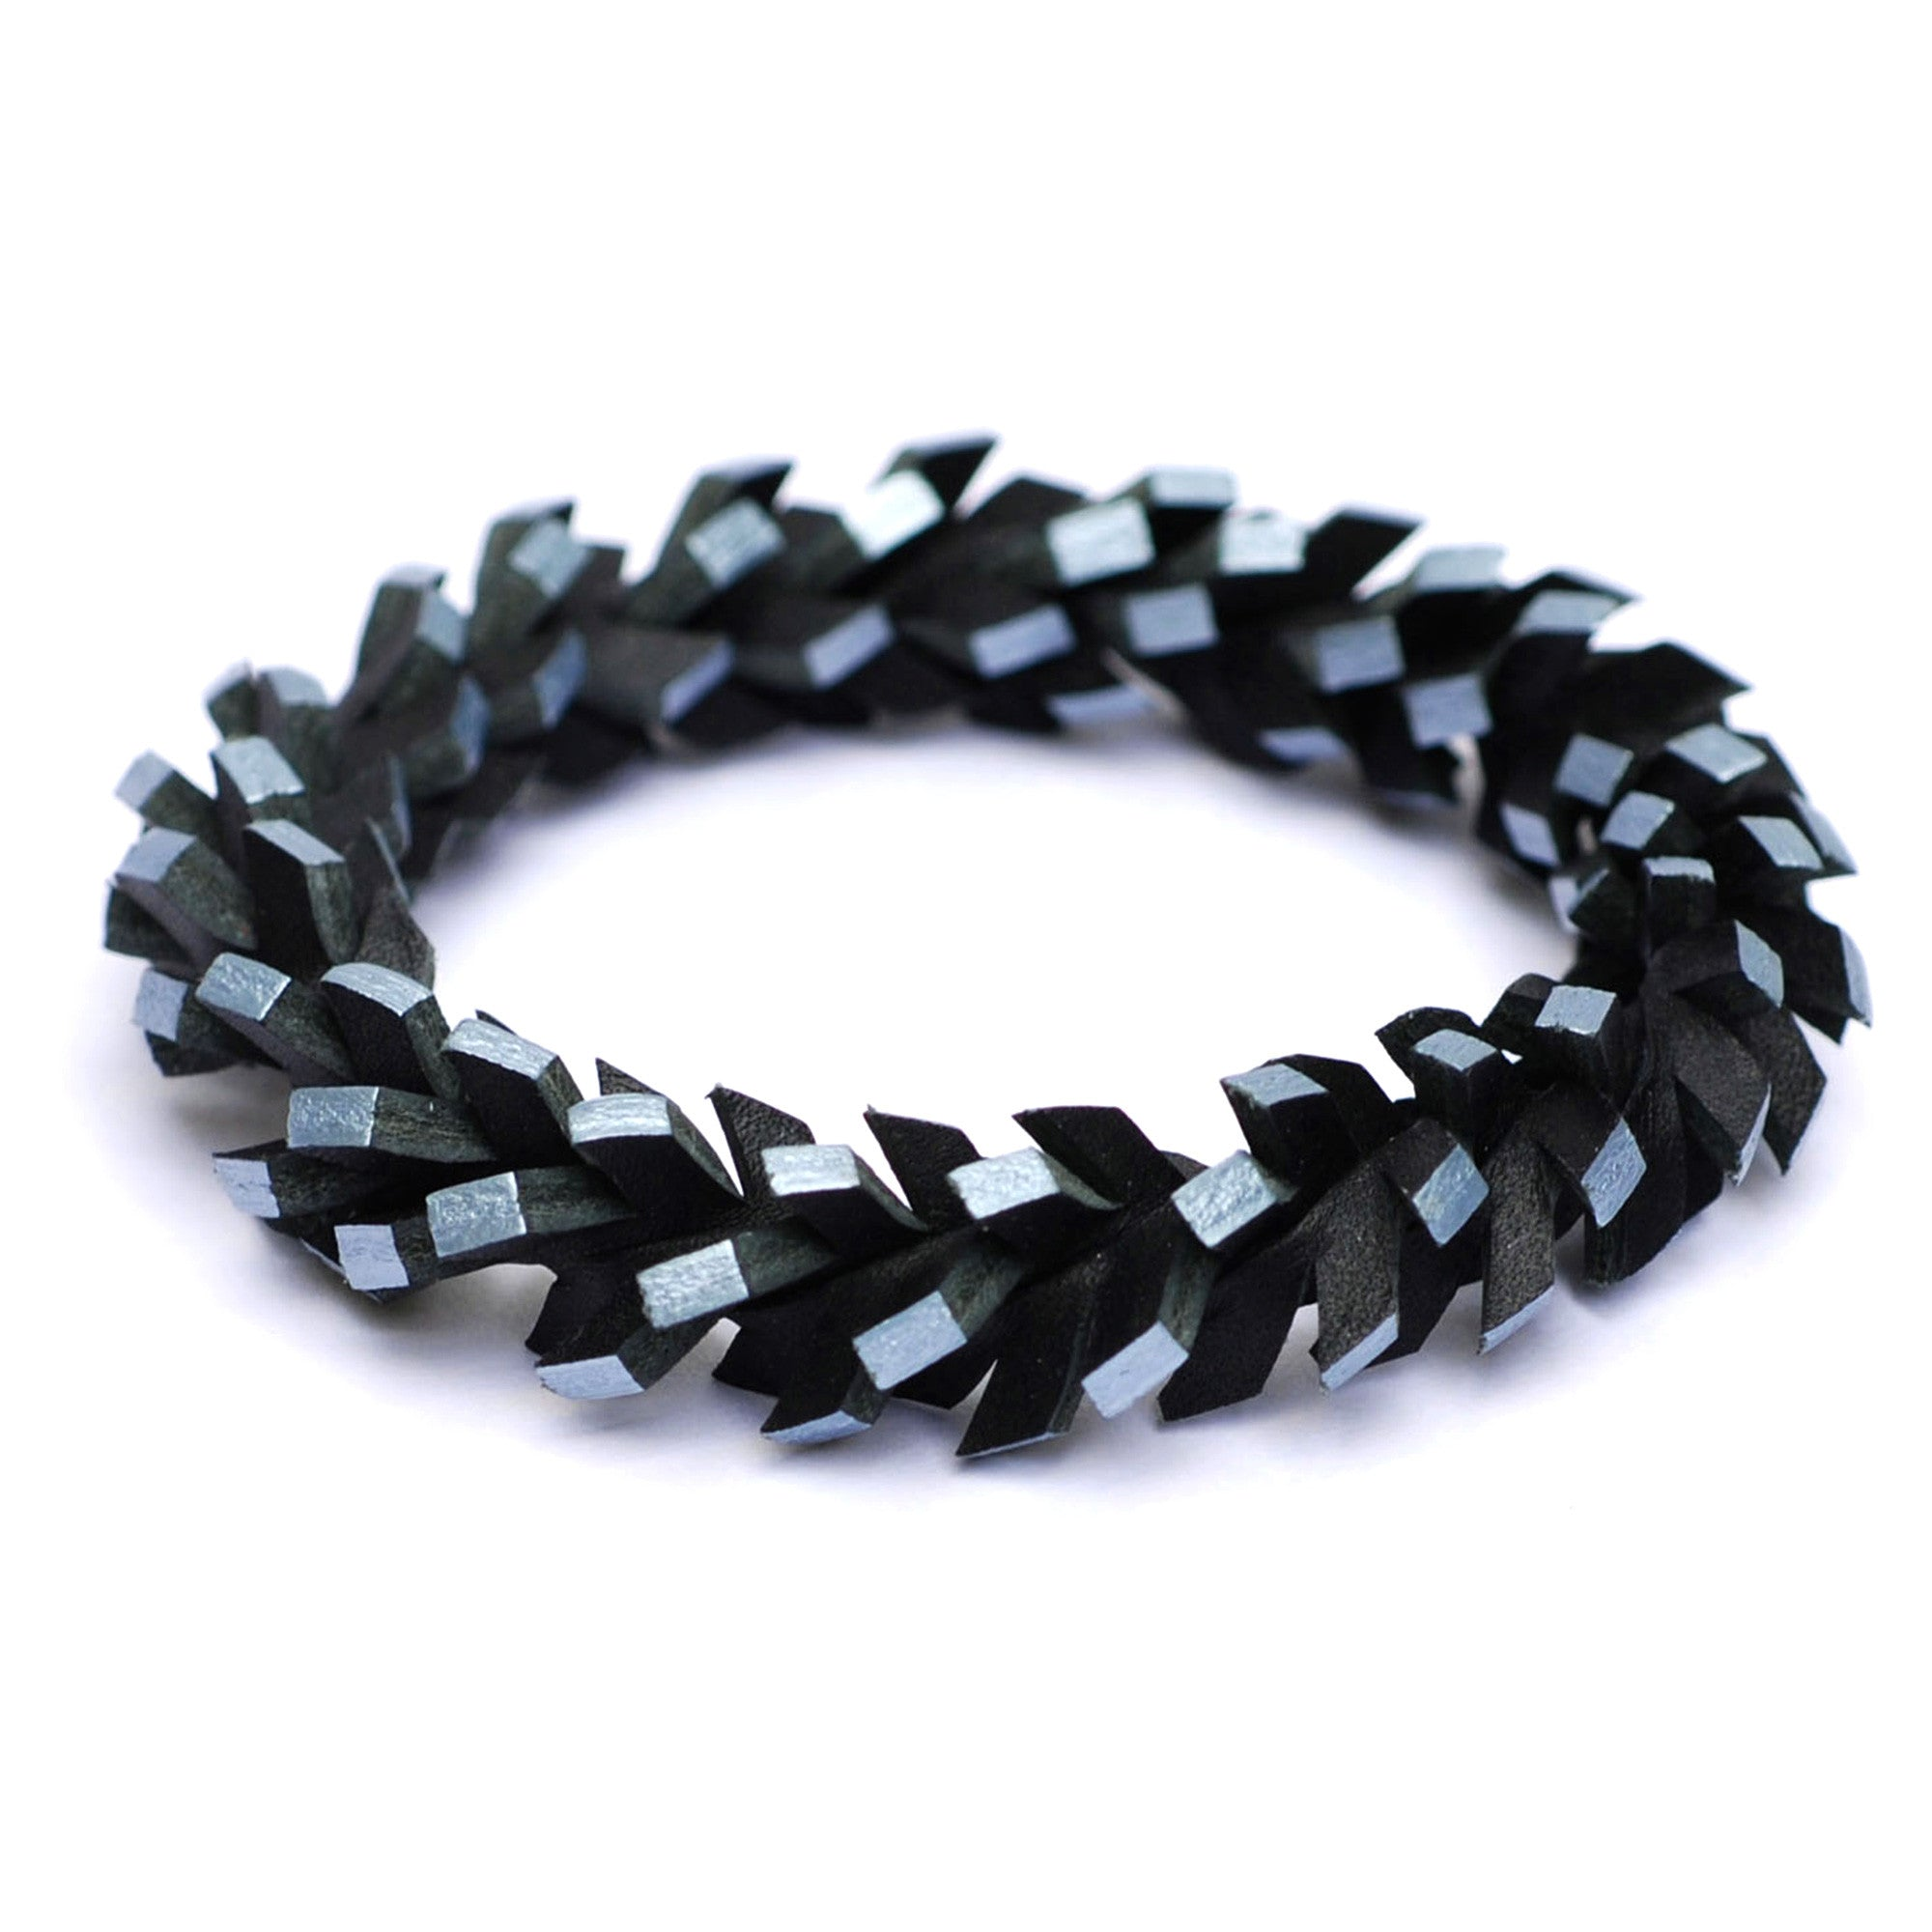 Tania Clarke Hall: In A Twist Bracelet - Pewter & Black